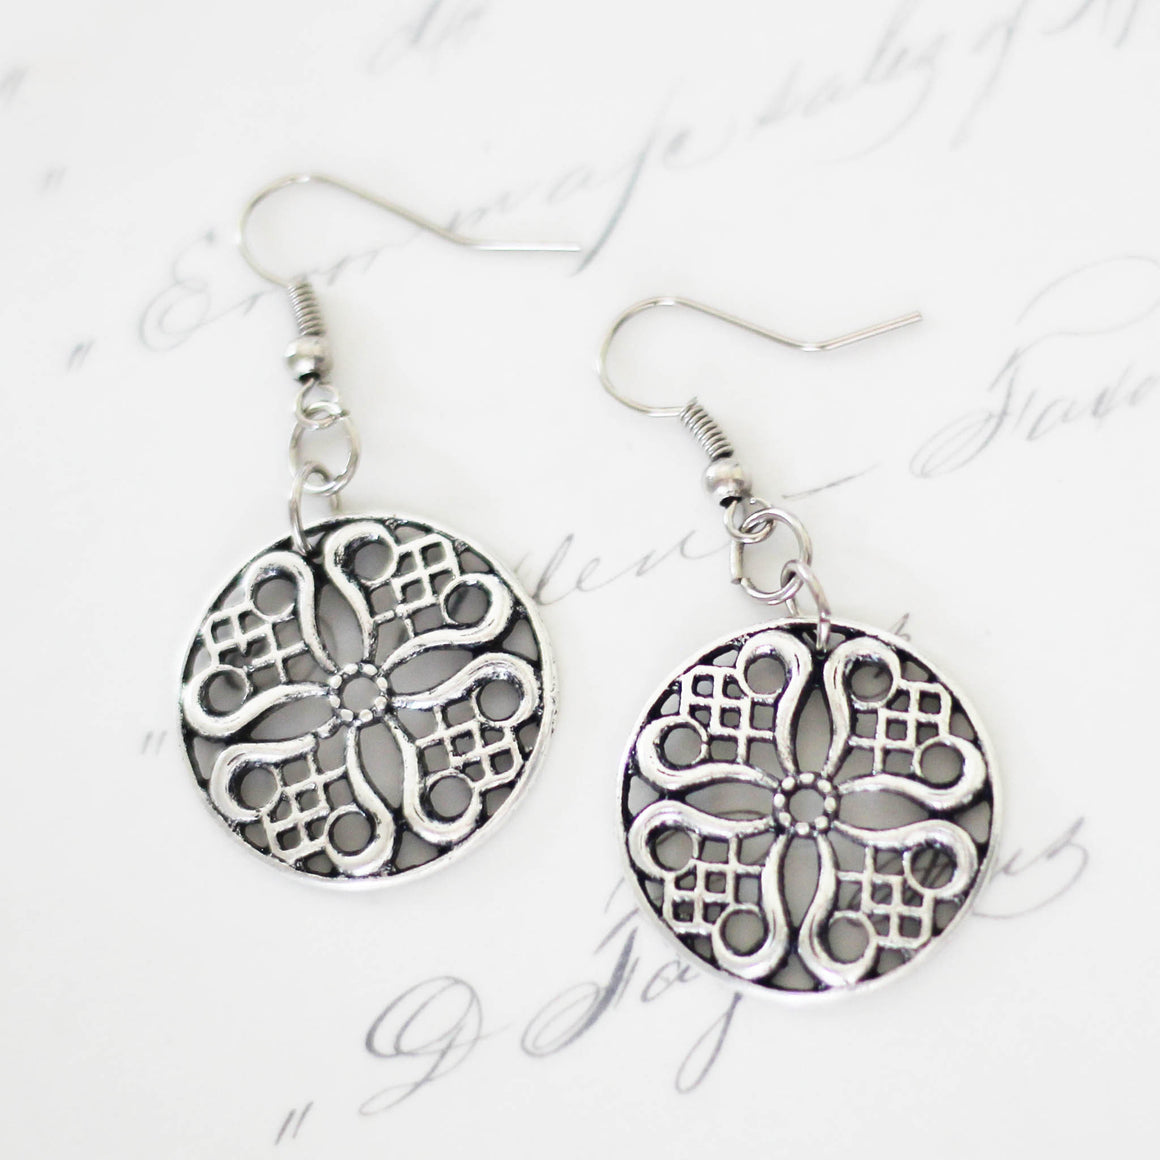 Antique Silver Filigree Earrings close up